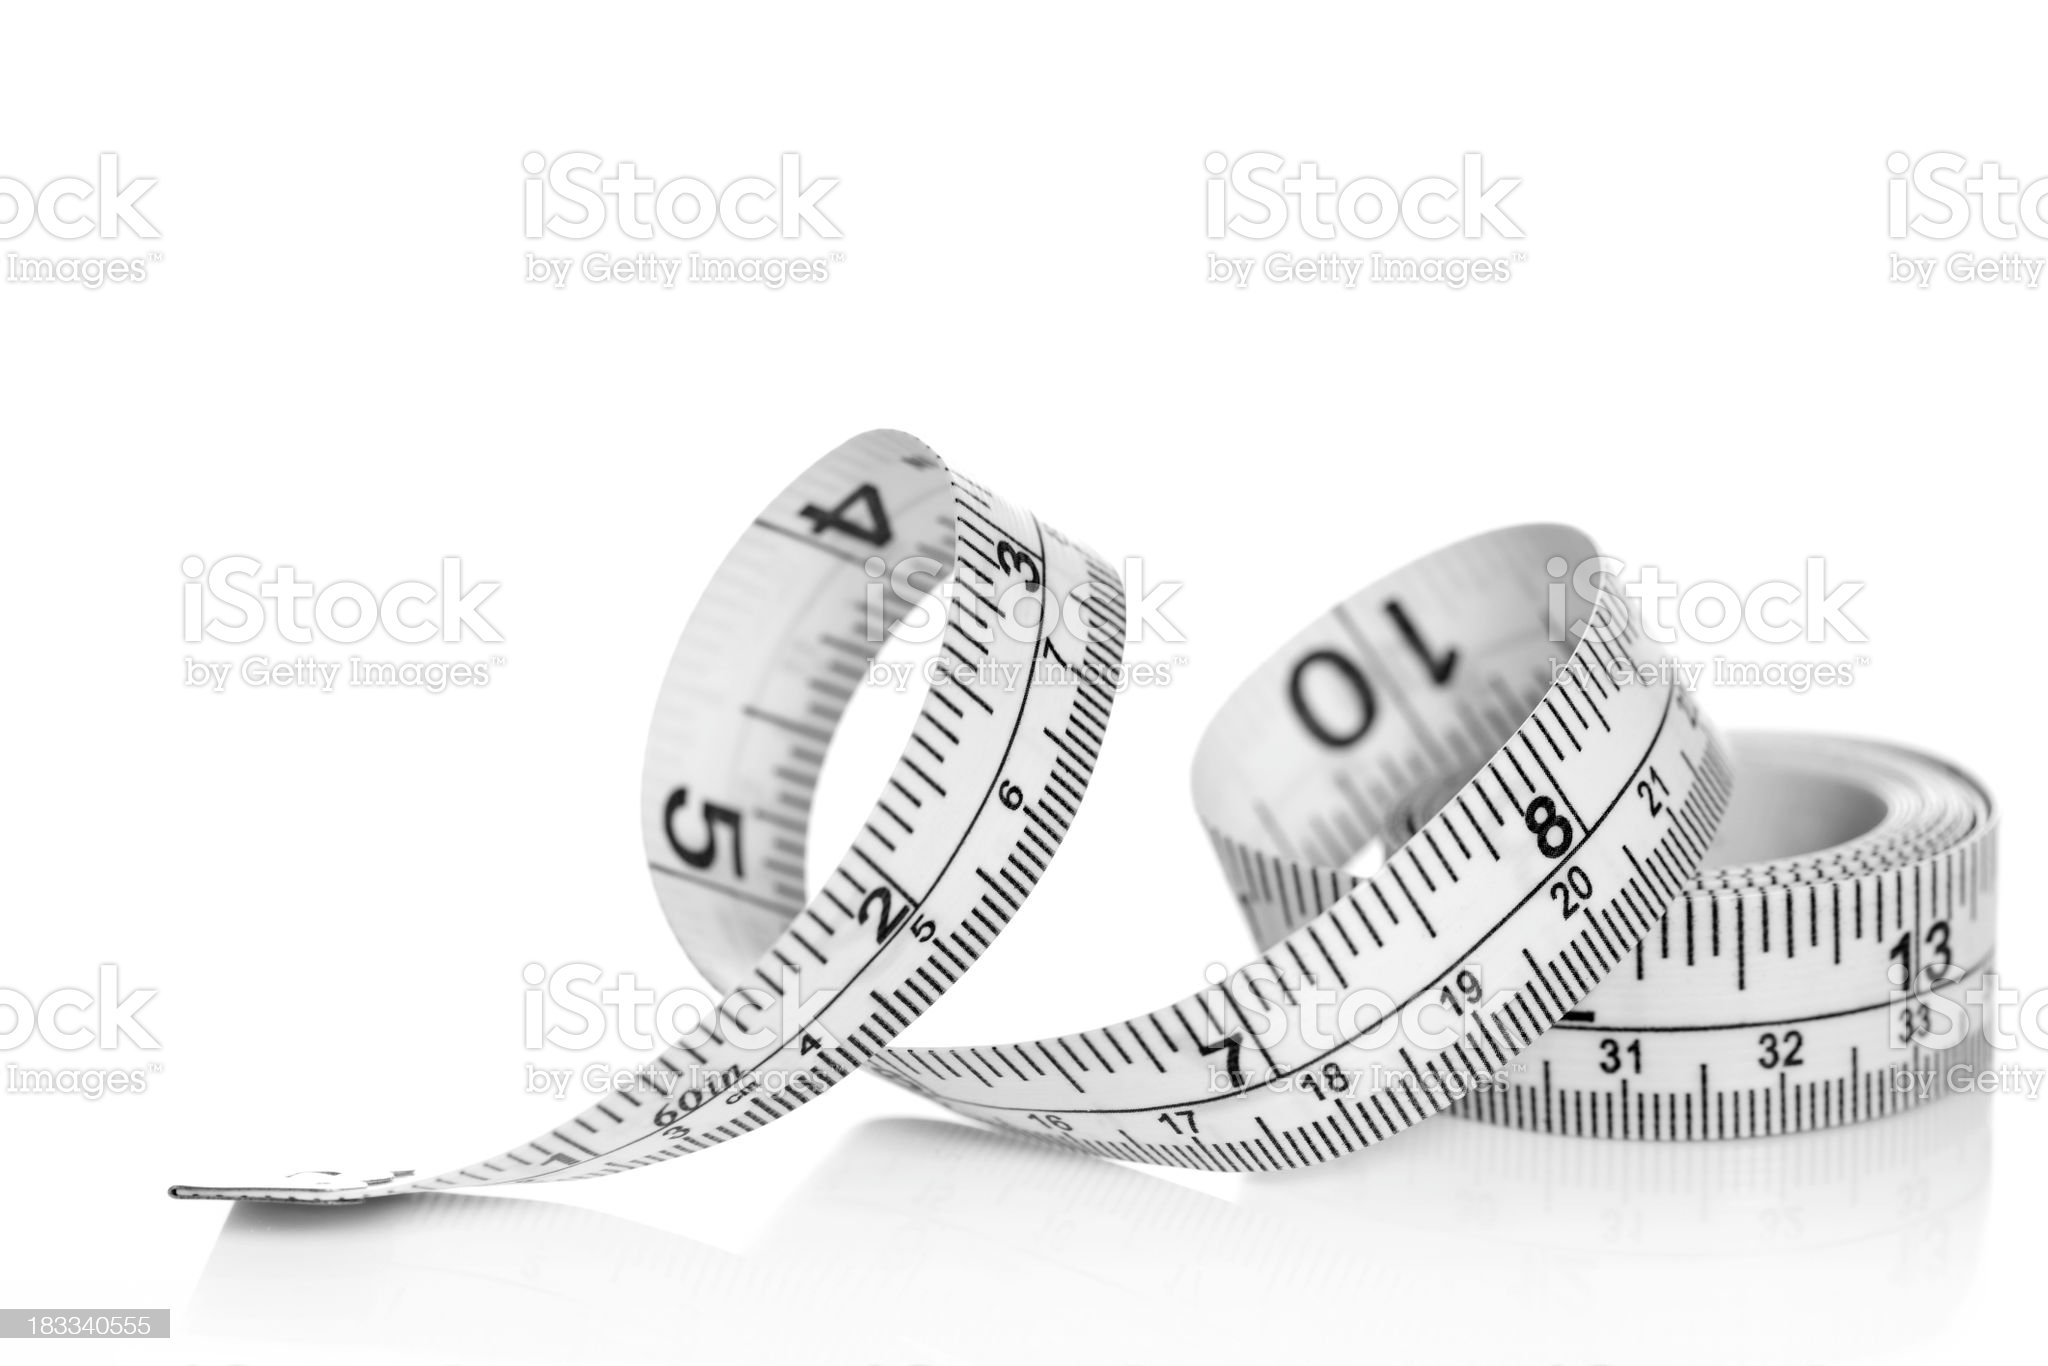 Tape measure on white background royalty-free stock photo